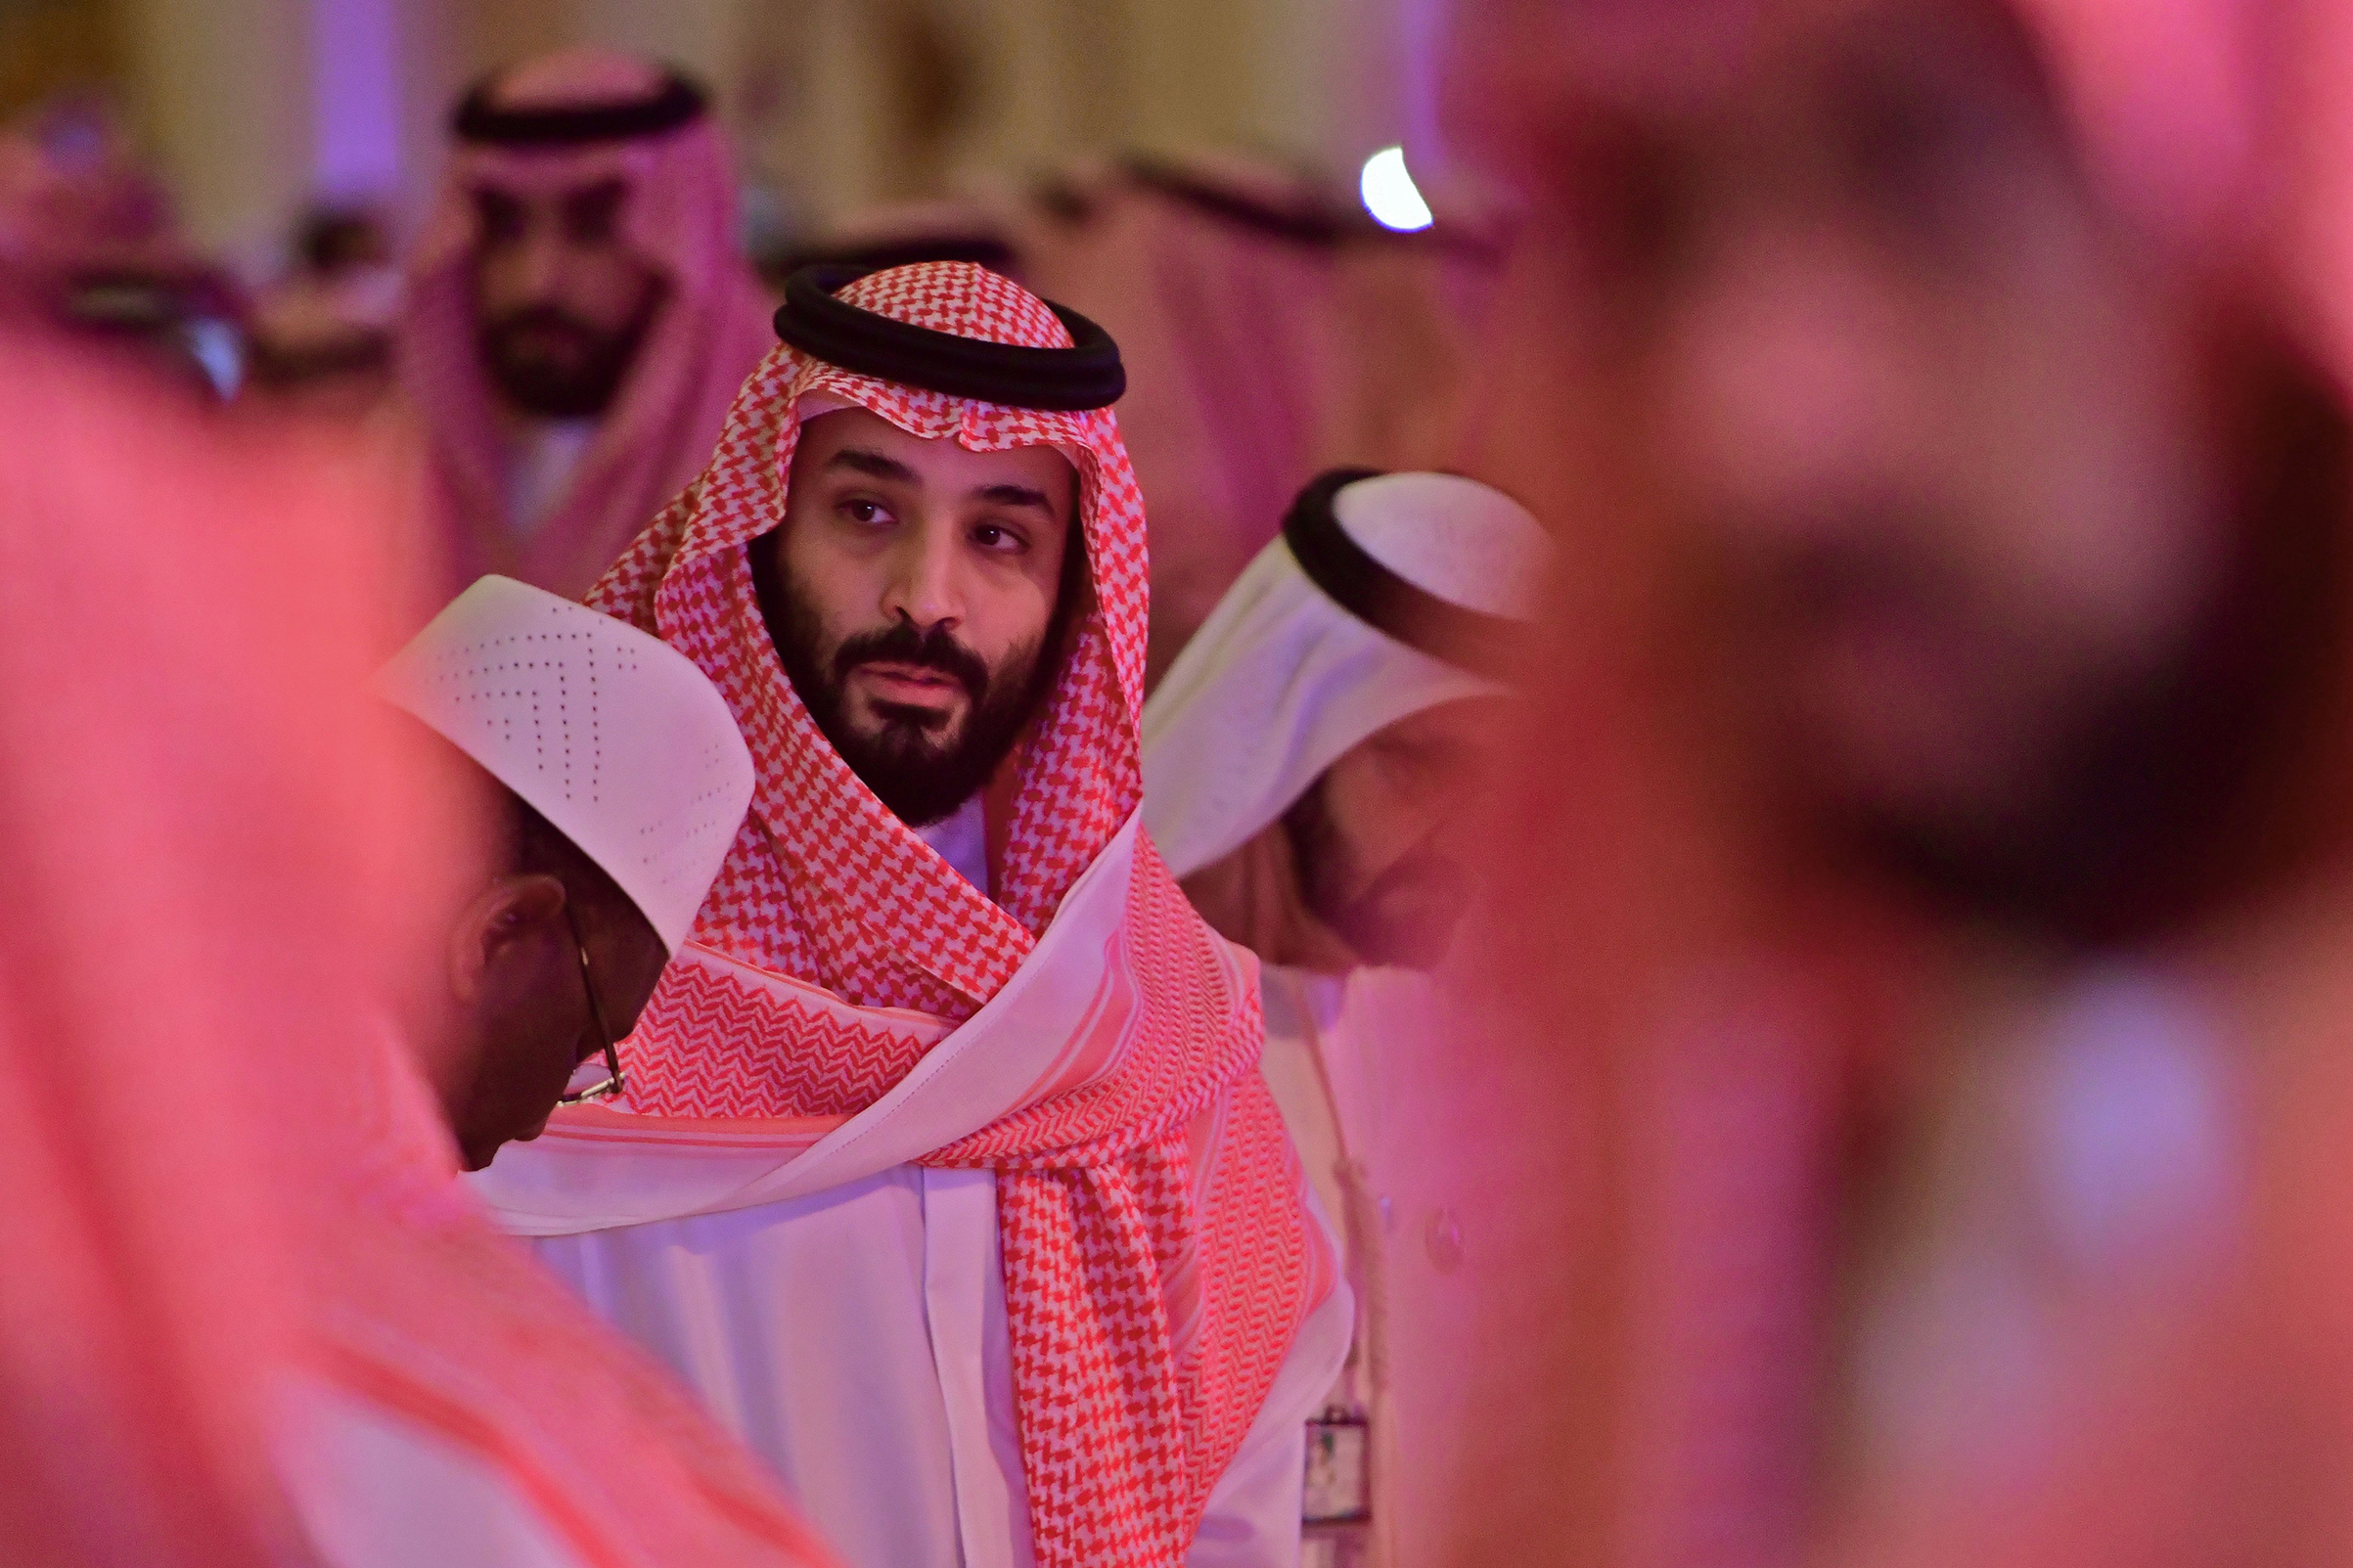 Saudi Crown Prince Mohammed bin Salman arrives at the Future Investment Initiative FII conference in the Saudi capital Riyadh on Oct. 24, 2018.